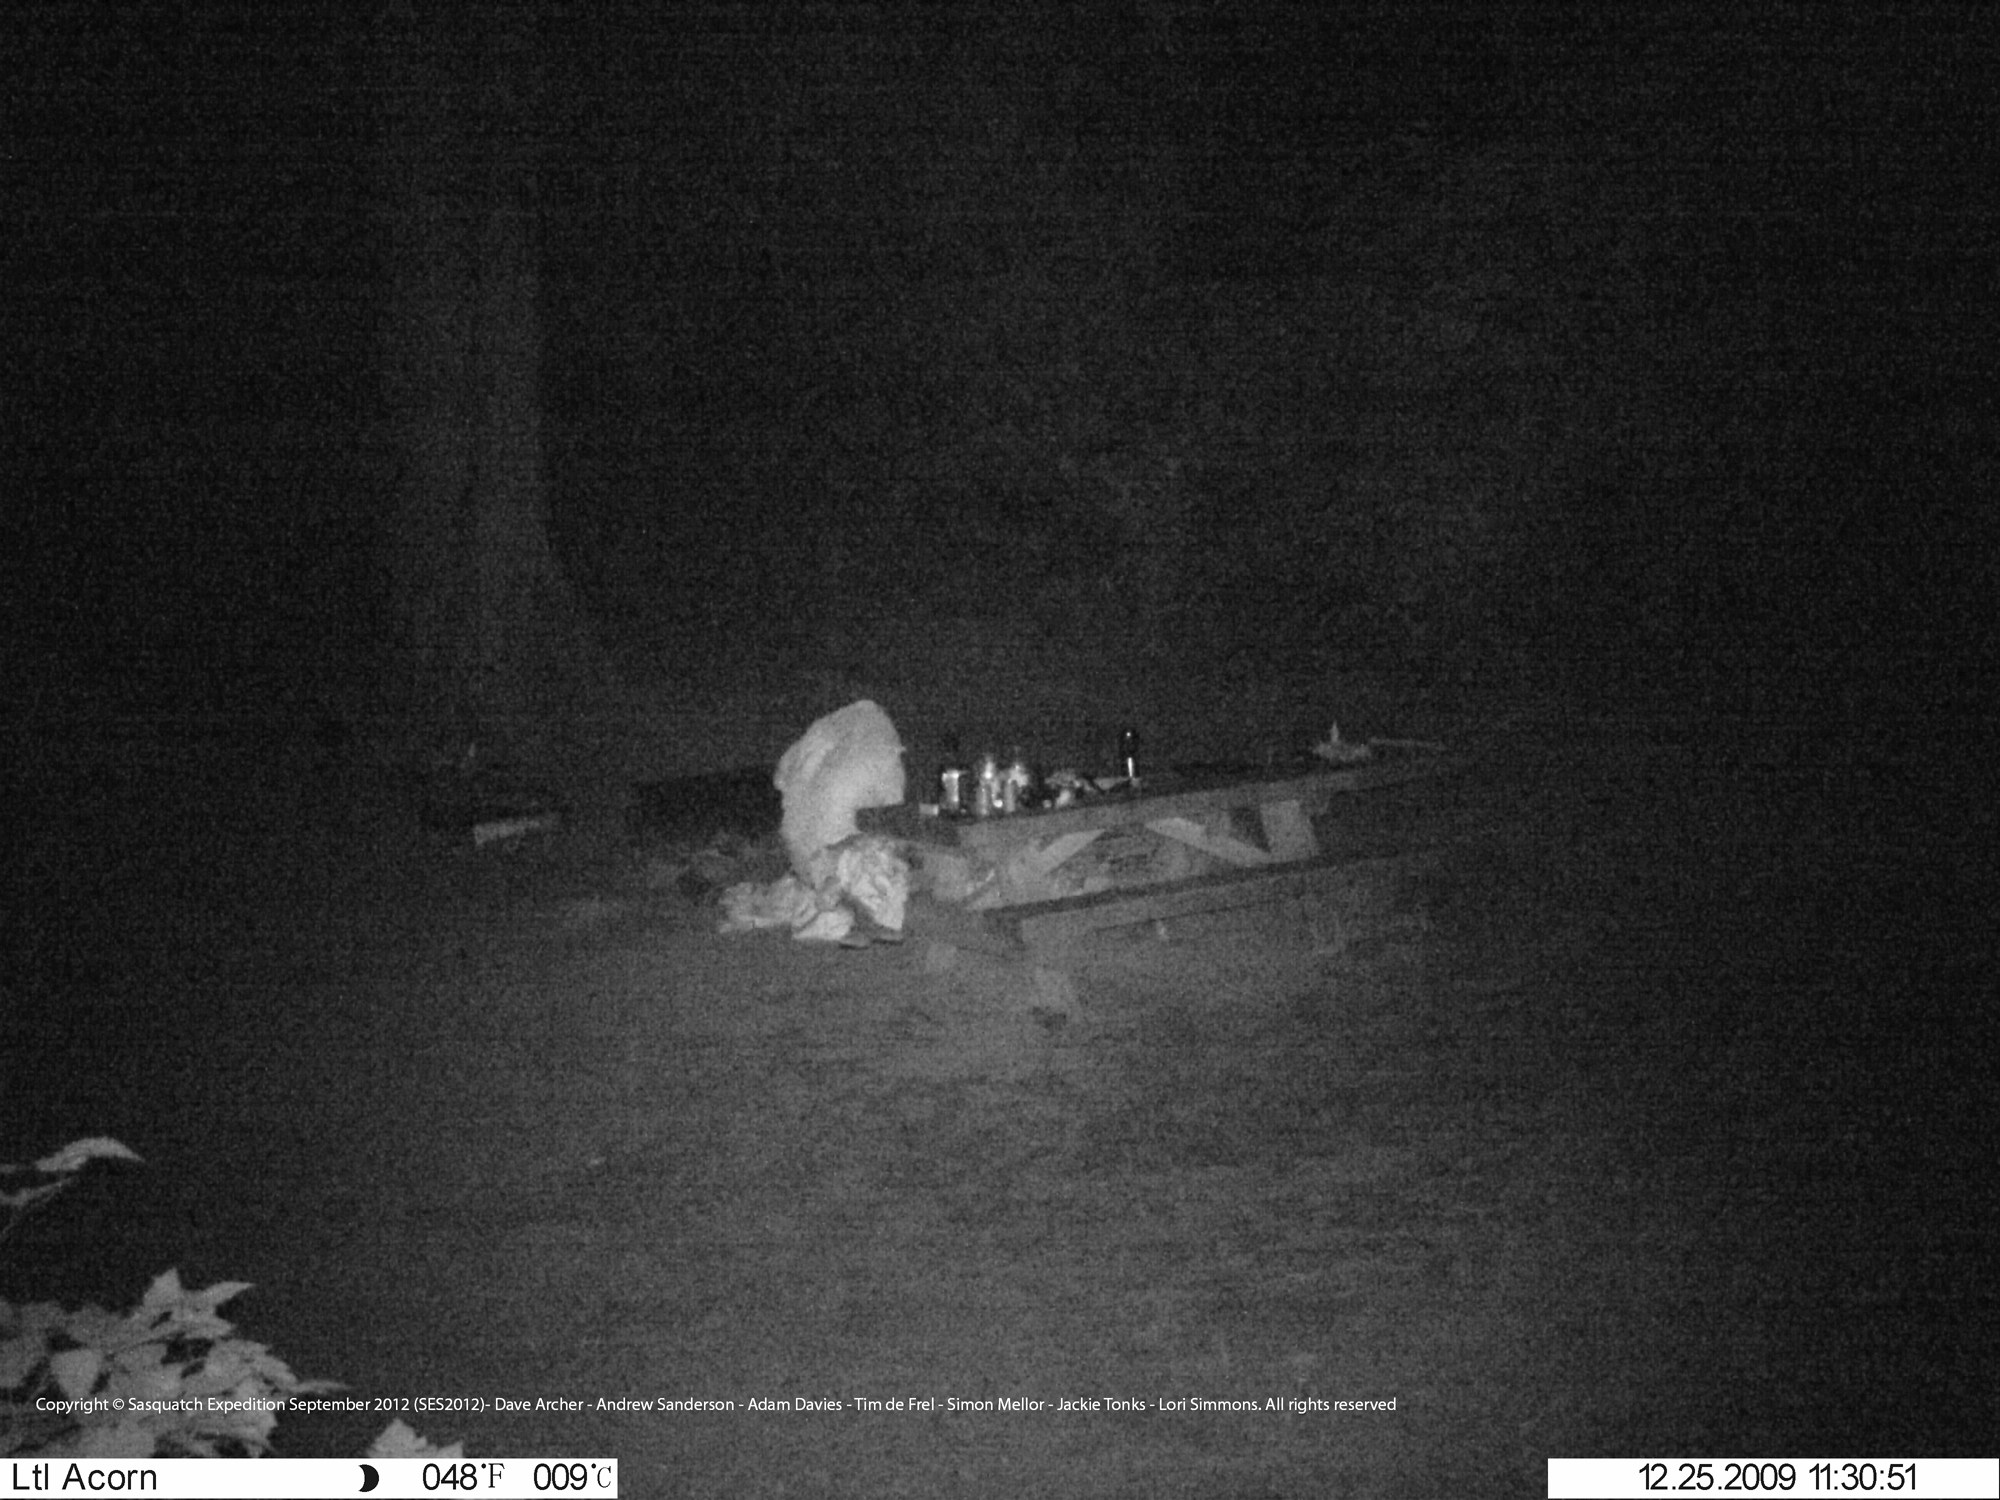 Extreme Expeditions: Cloaked Figure Caught On Camera. Sasquatch?